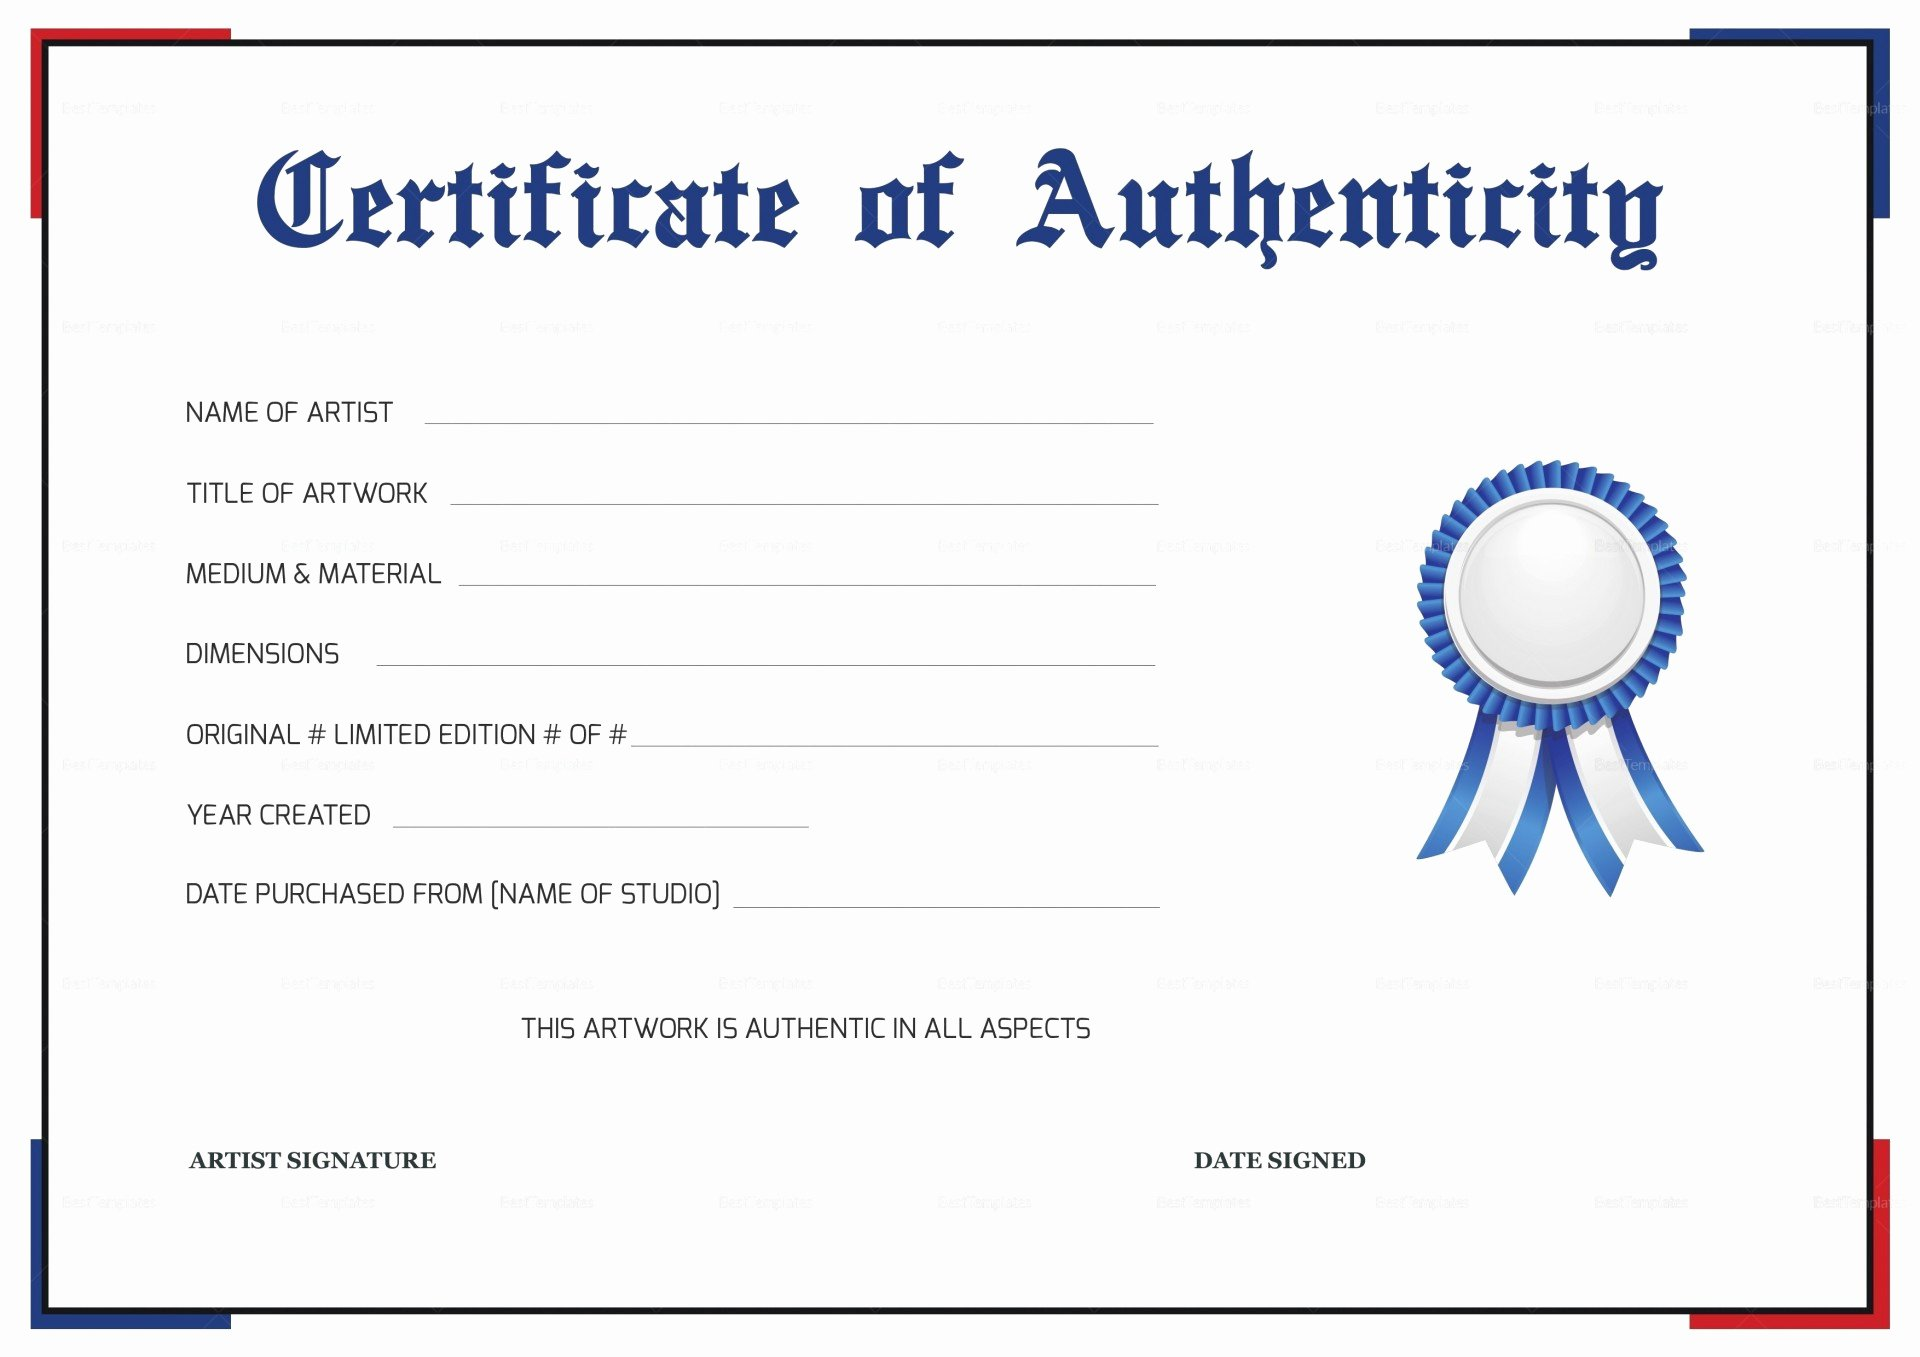 96 Artist Certificate Authenticity Template Free